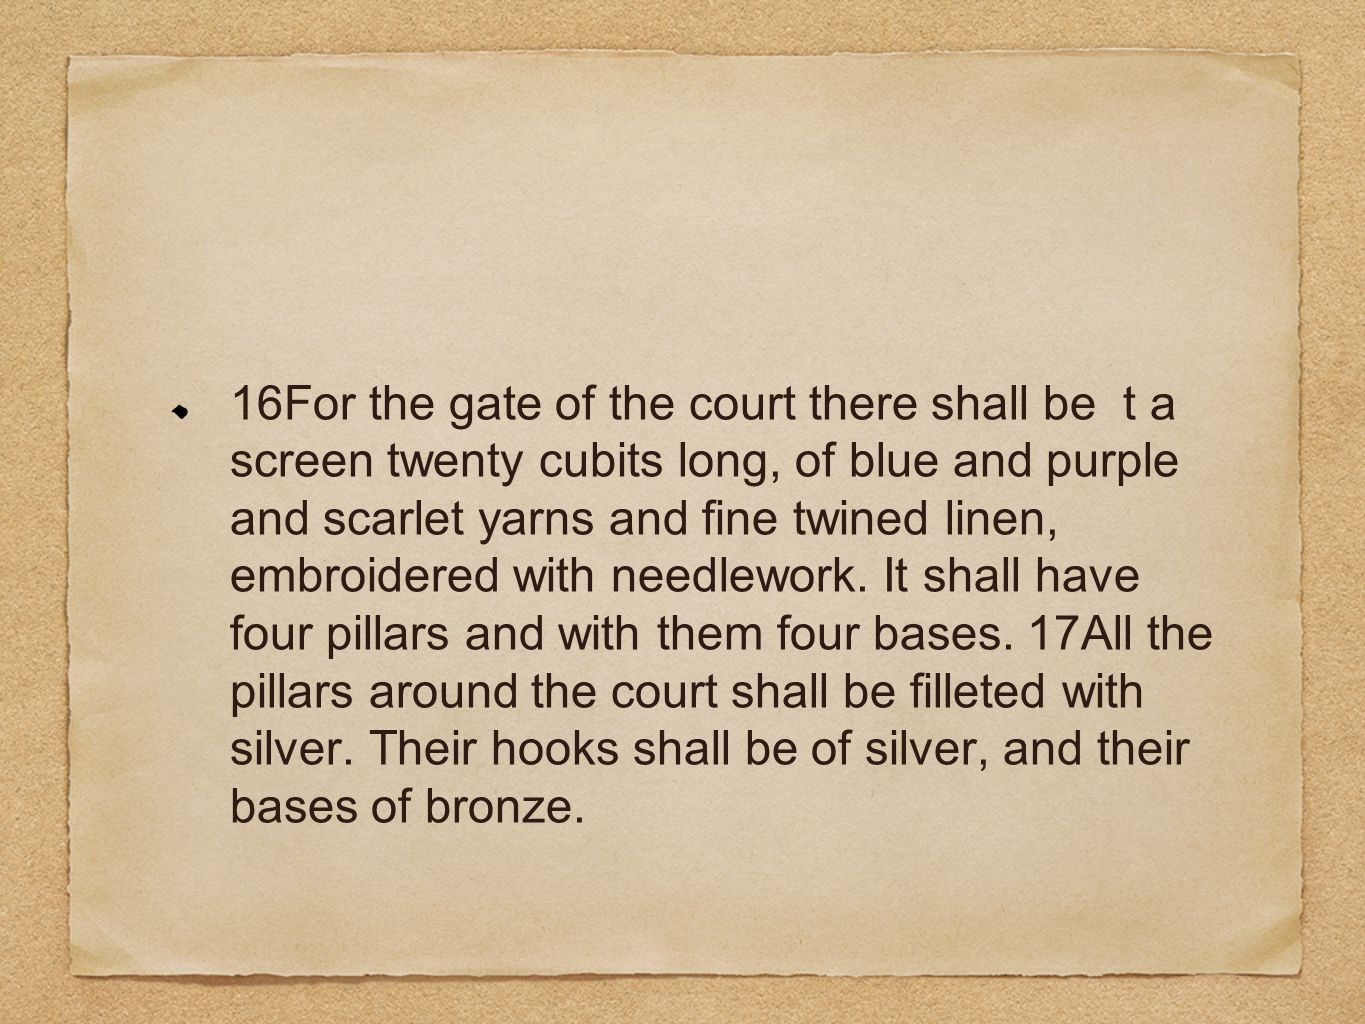 16For the gate of the court there shall be t a screen twenty cubits long, of blue and purple and scarlet yarns and fine twined linen, embroidered with needlework.